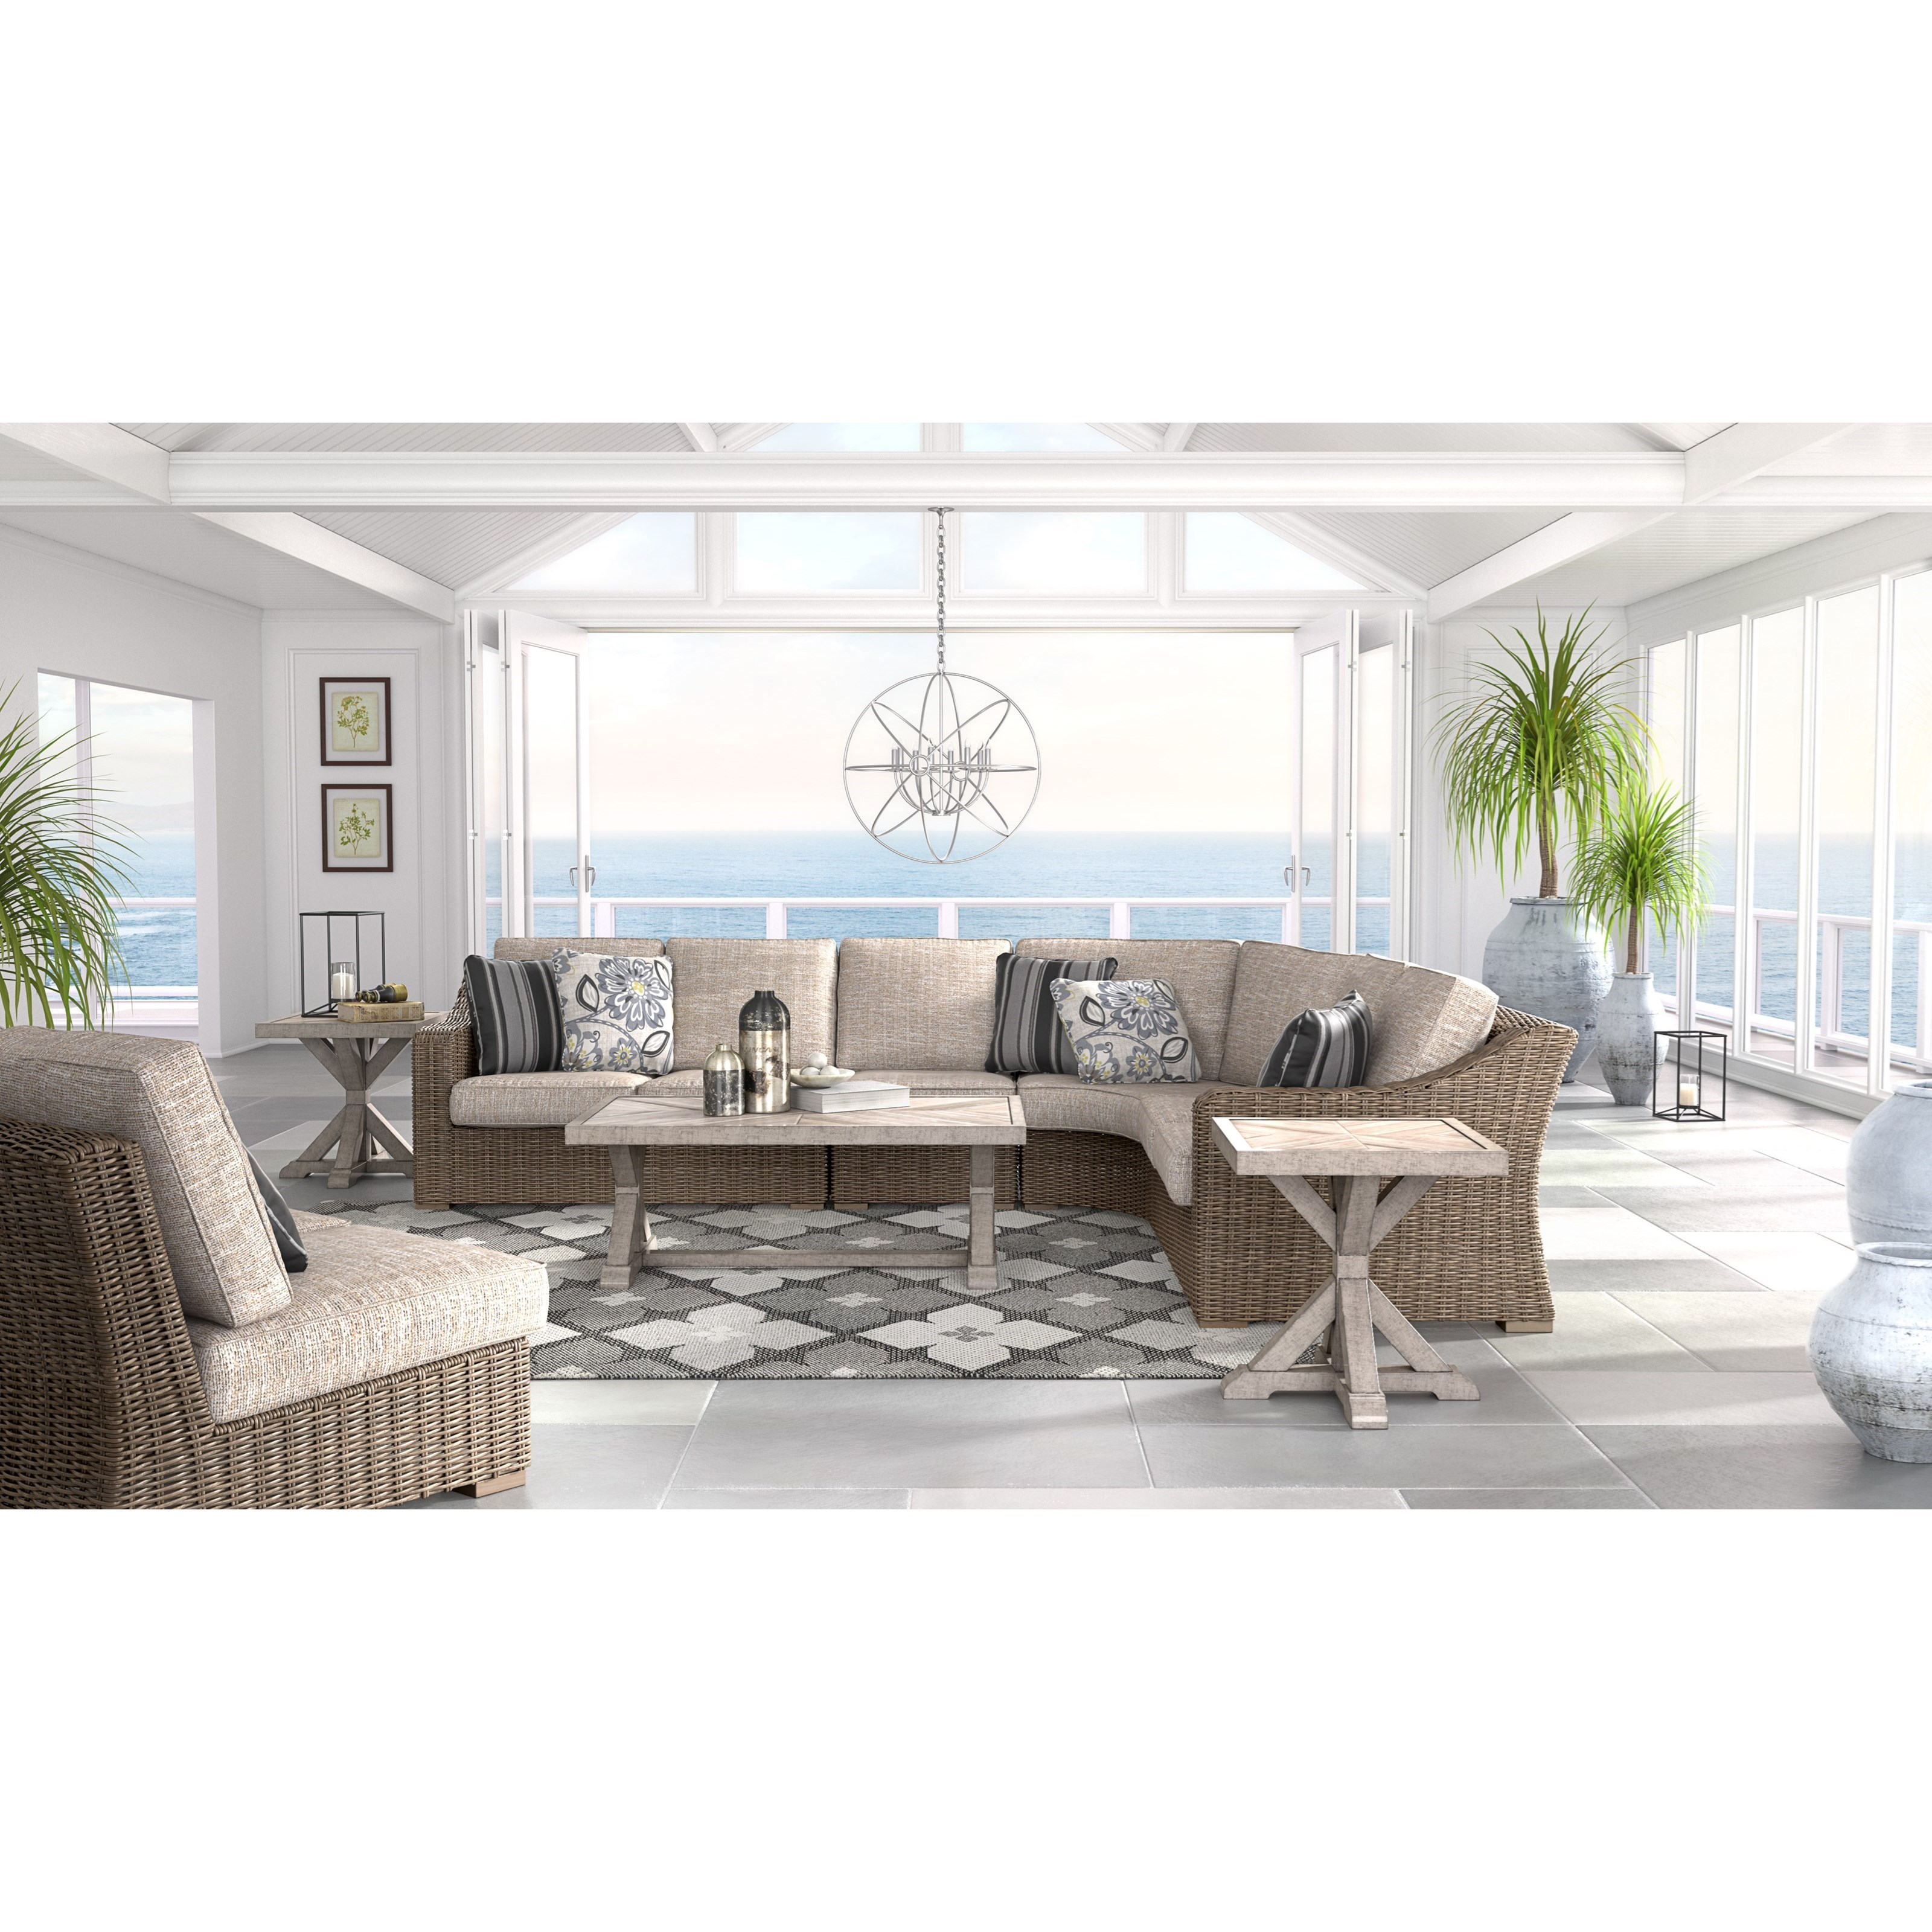 Ashley (Signature Design) Beachcroft Outdoor Conversation Set - Item Number: P791-854+2x846+851+2x702+701